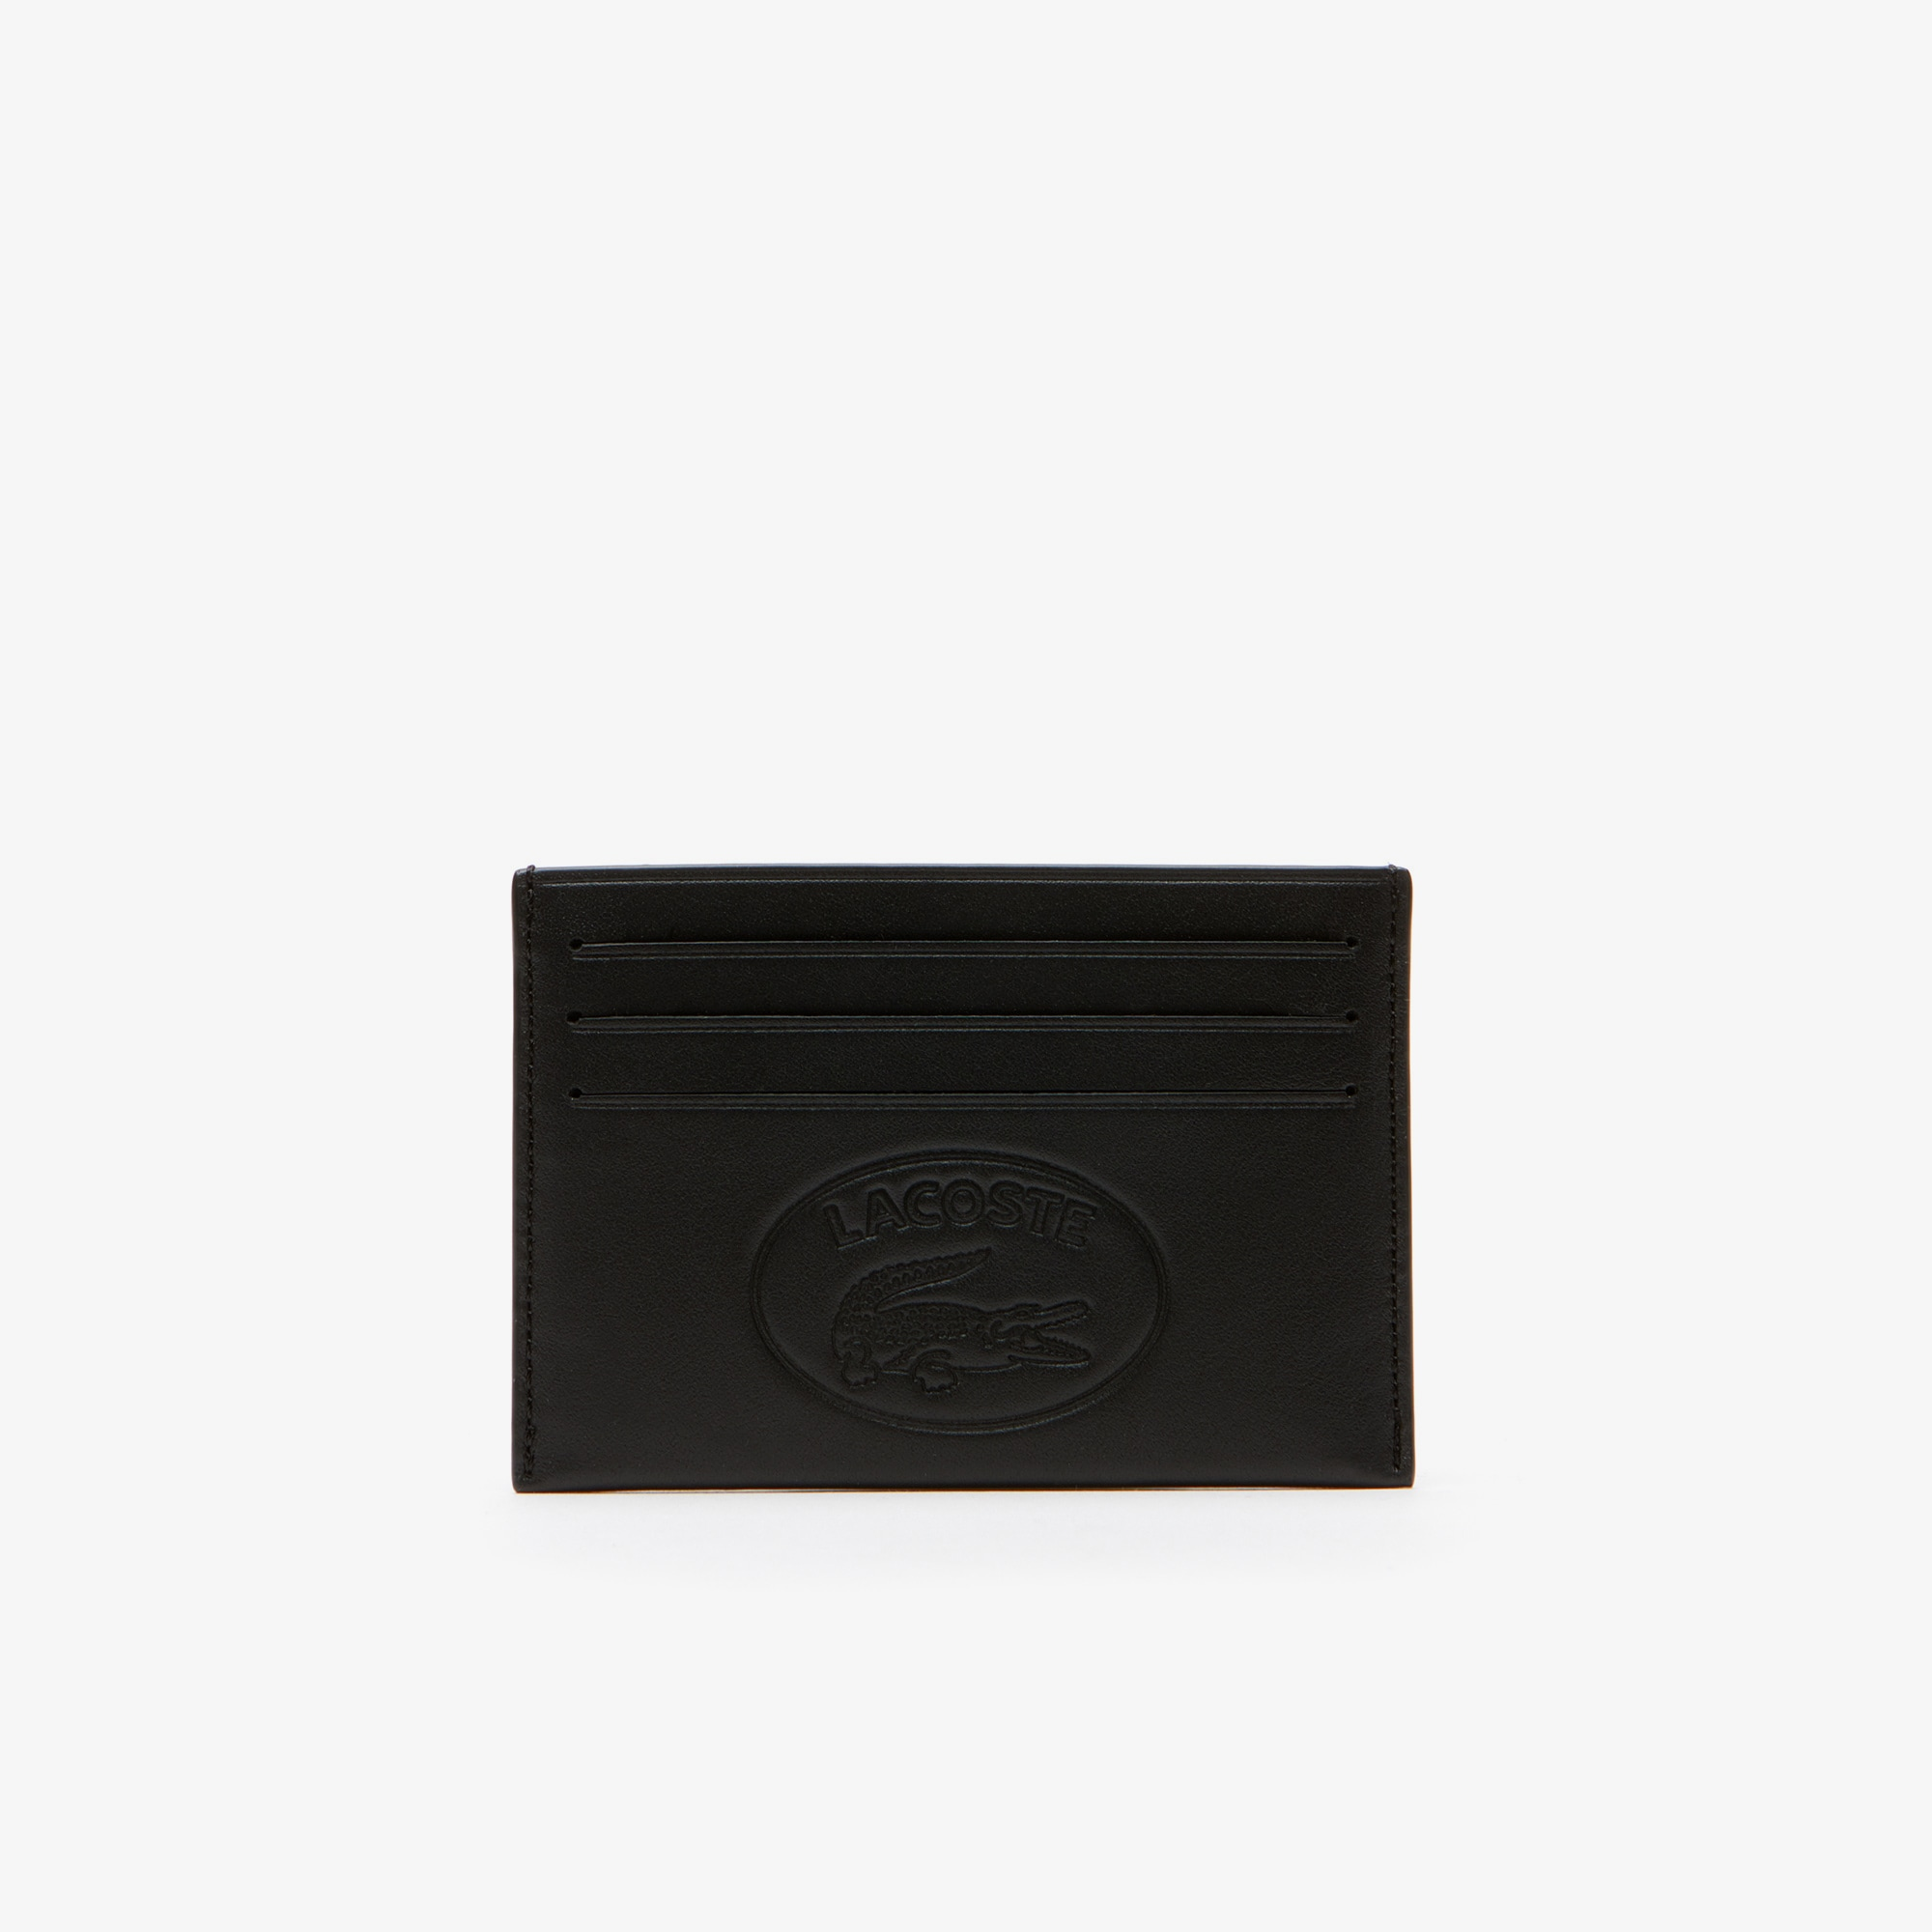 Men's L.12.12 Cuir Casual Embossed Branding Leather 6 Card Holder